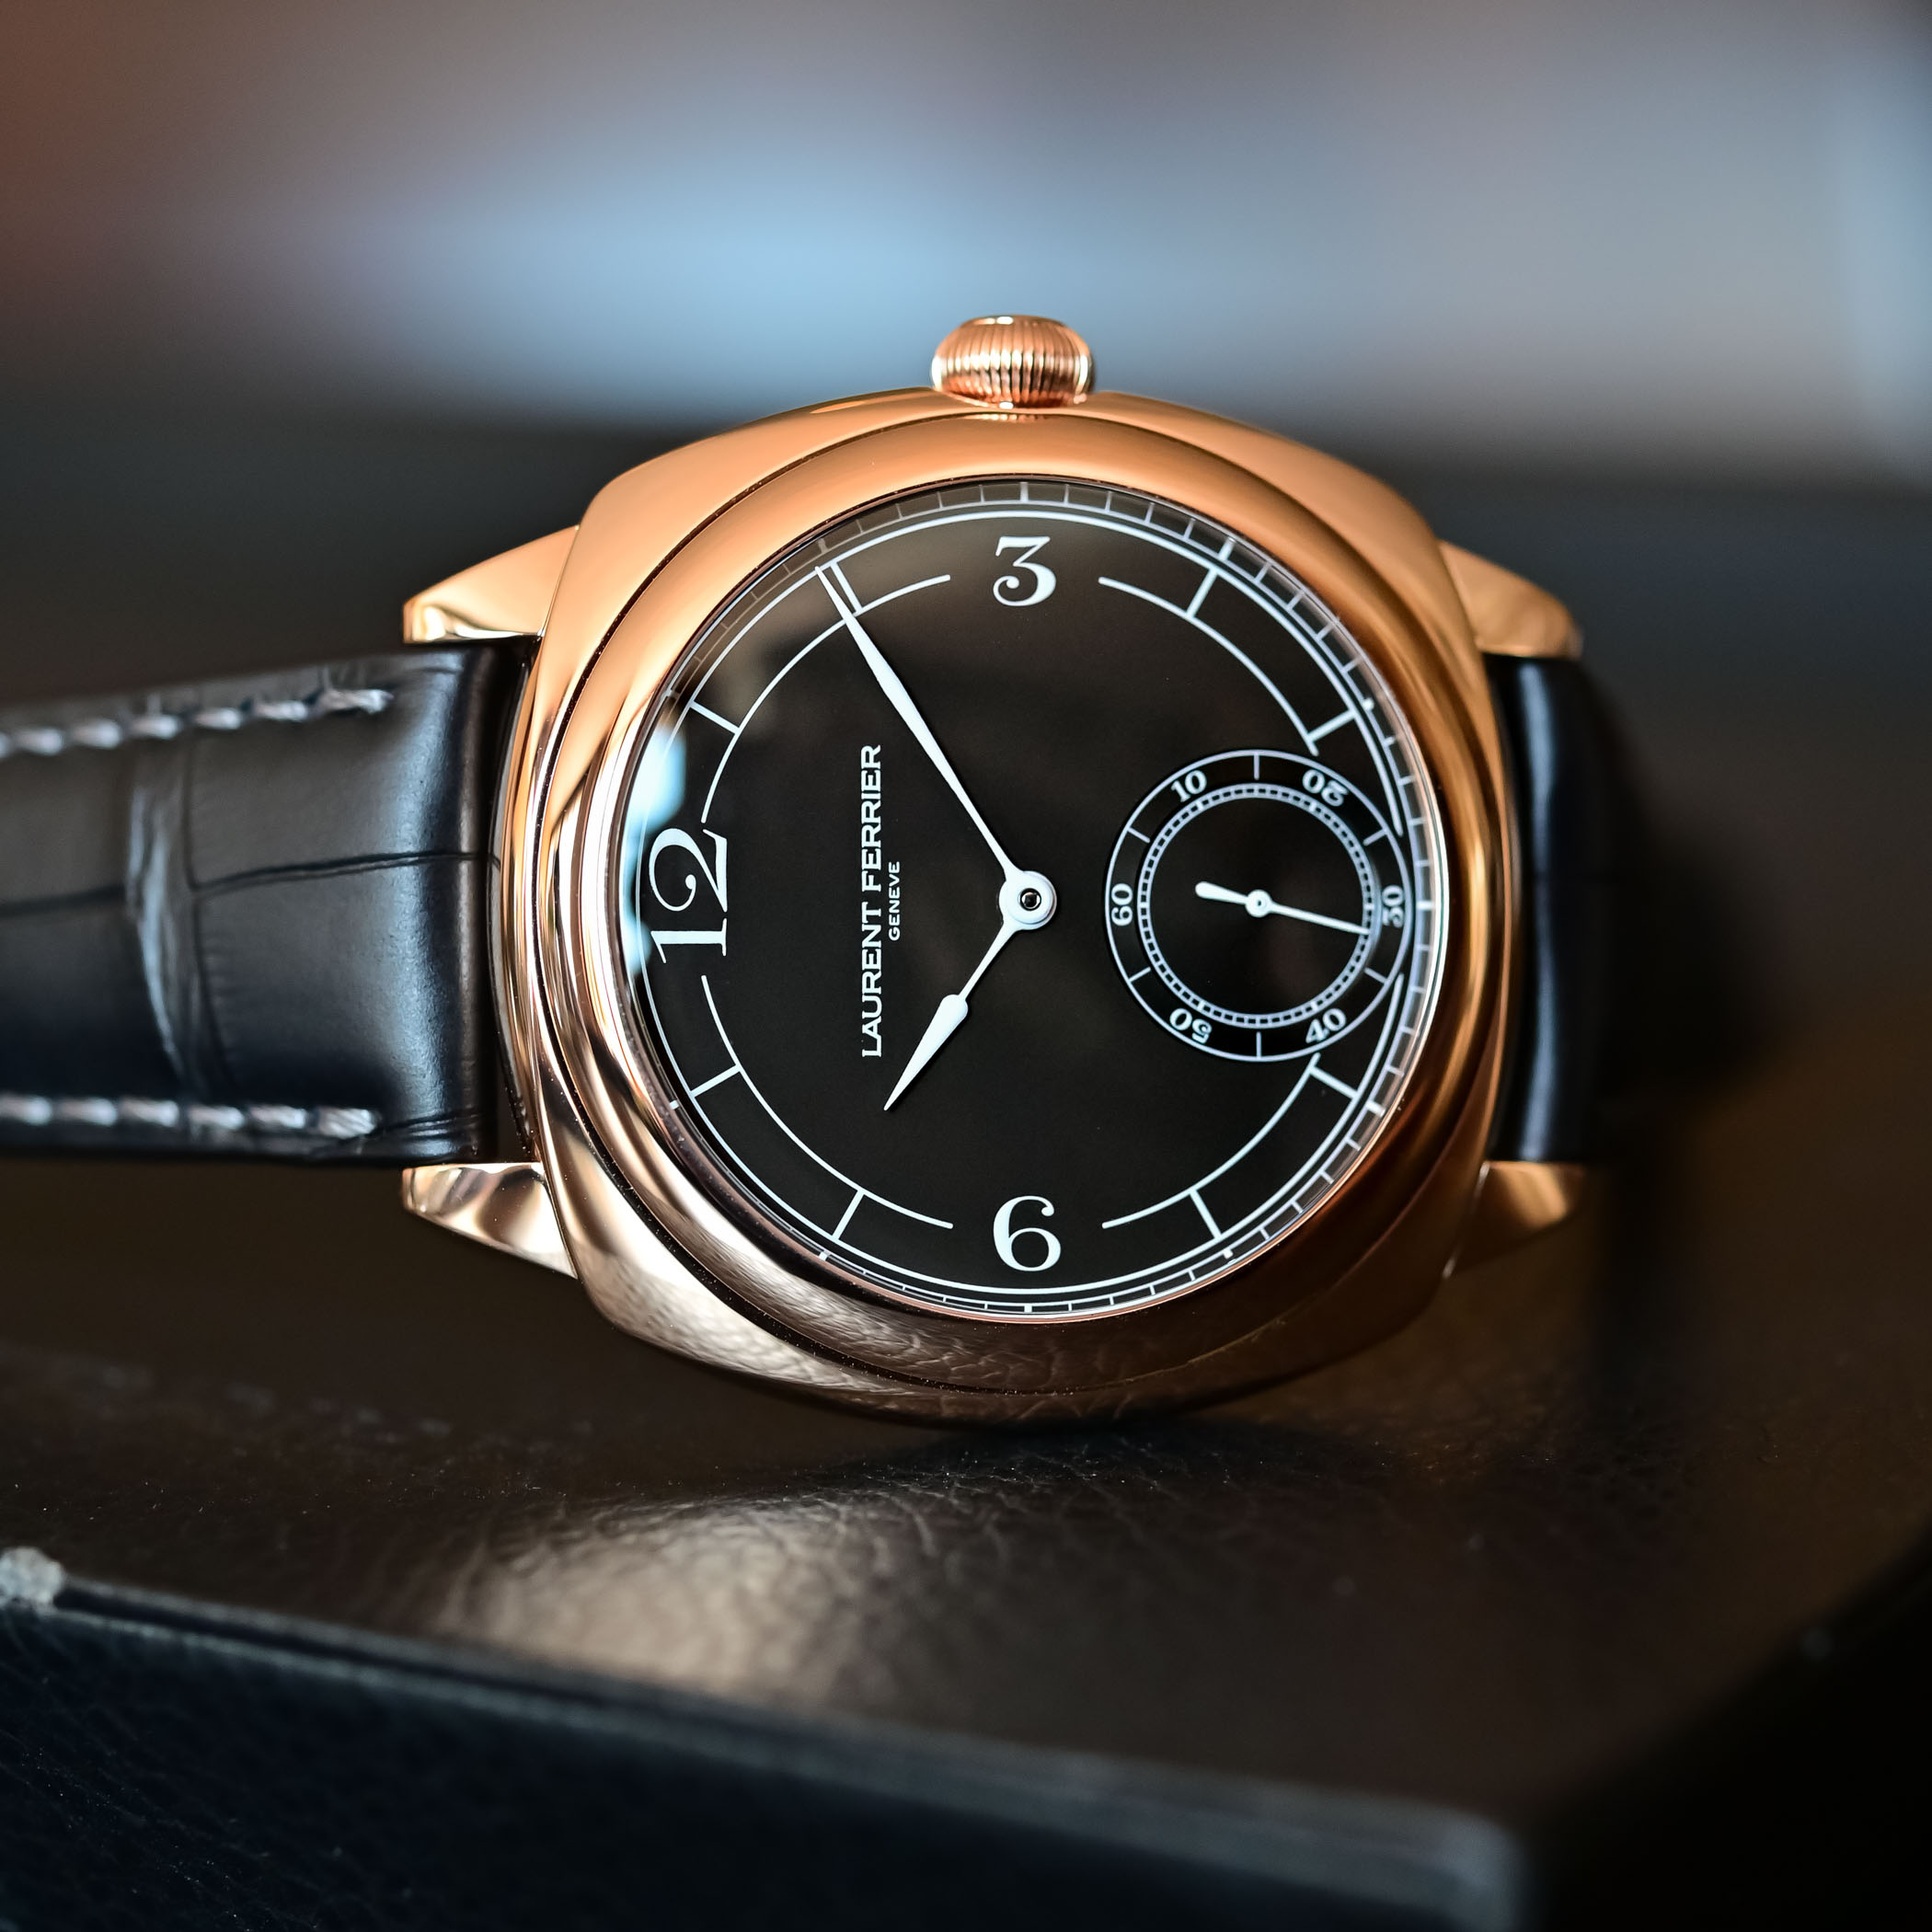 2021 Laurent Ferrier Square Micro-Rotor Retro Watches - Hands-on - 5